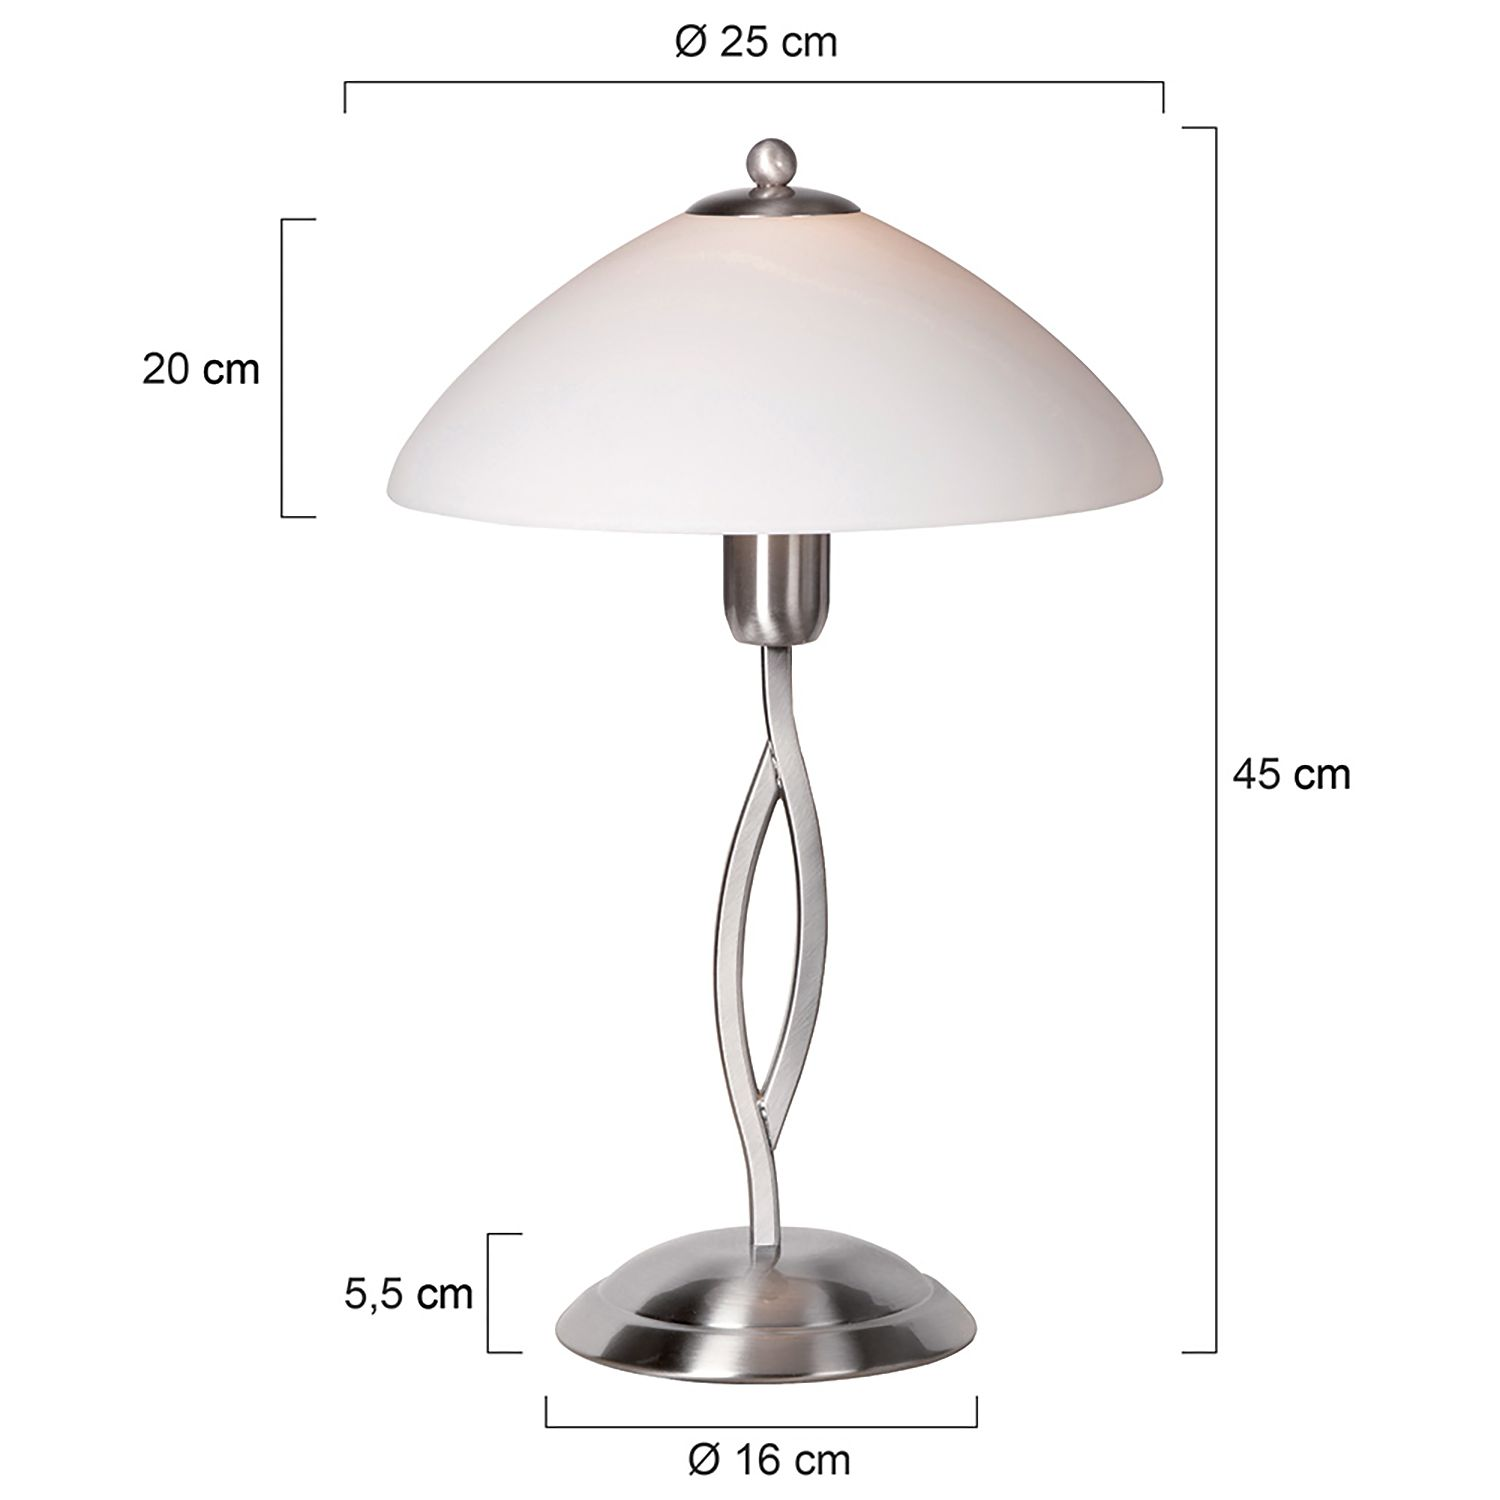 EEK A++, Lampe de table Capri - 1 ampoule Nickel mat, Steinhauer